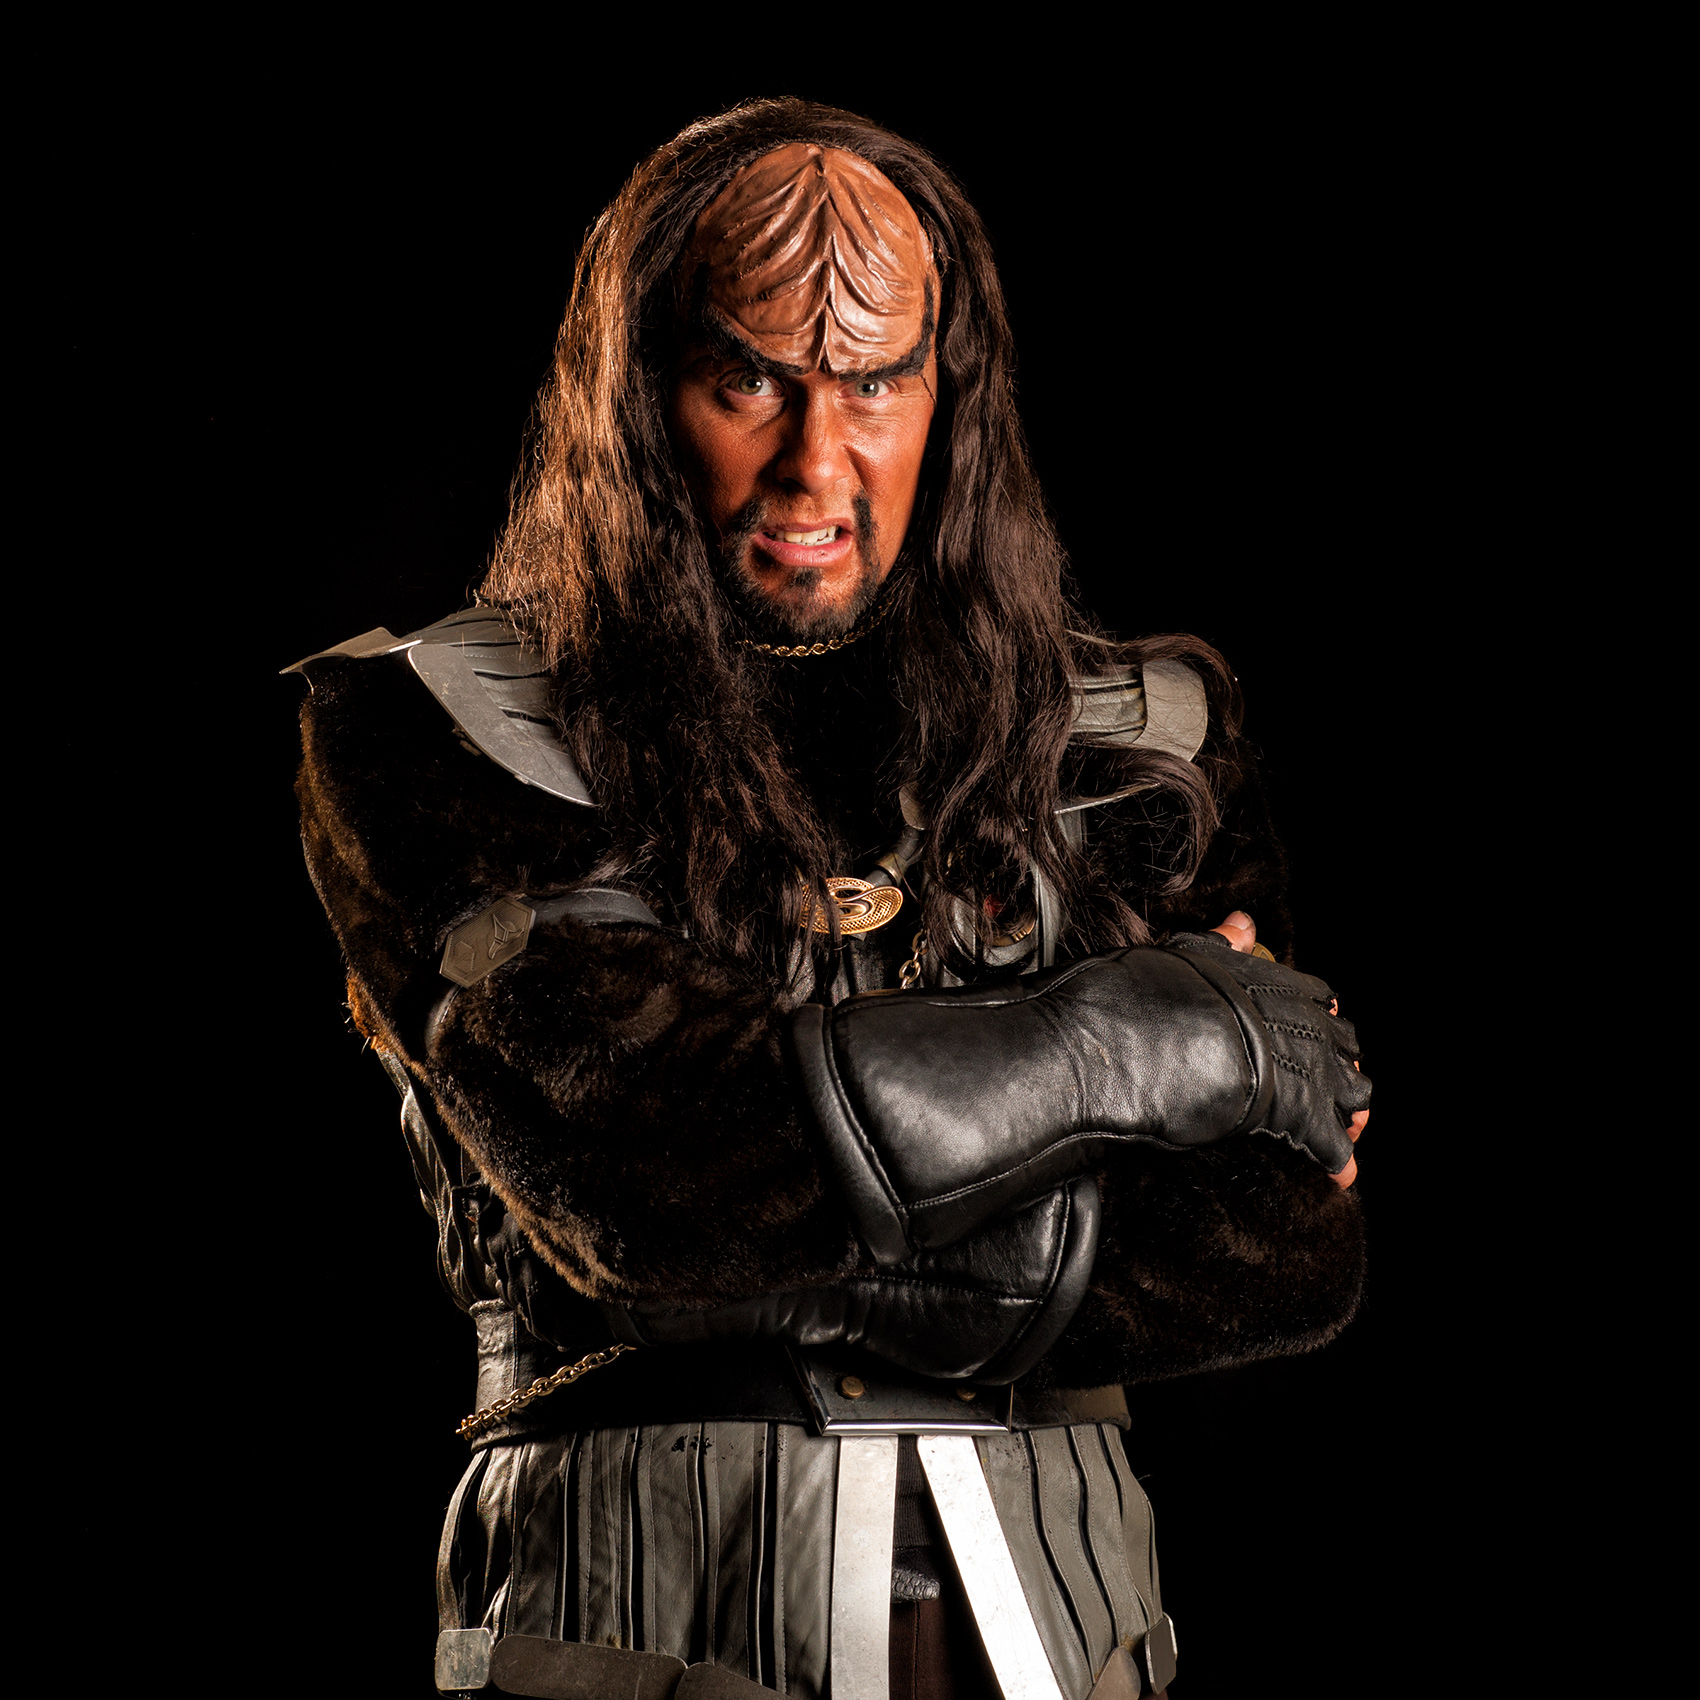 a-man-dressed-as-a-klingon-from-star-trek-grimaces-as-he-has-his-portrait-taken-at-toronto-comicon